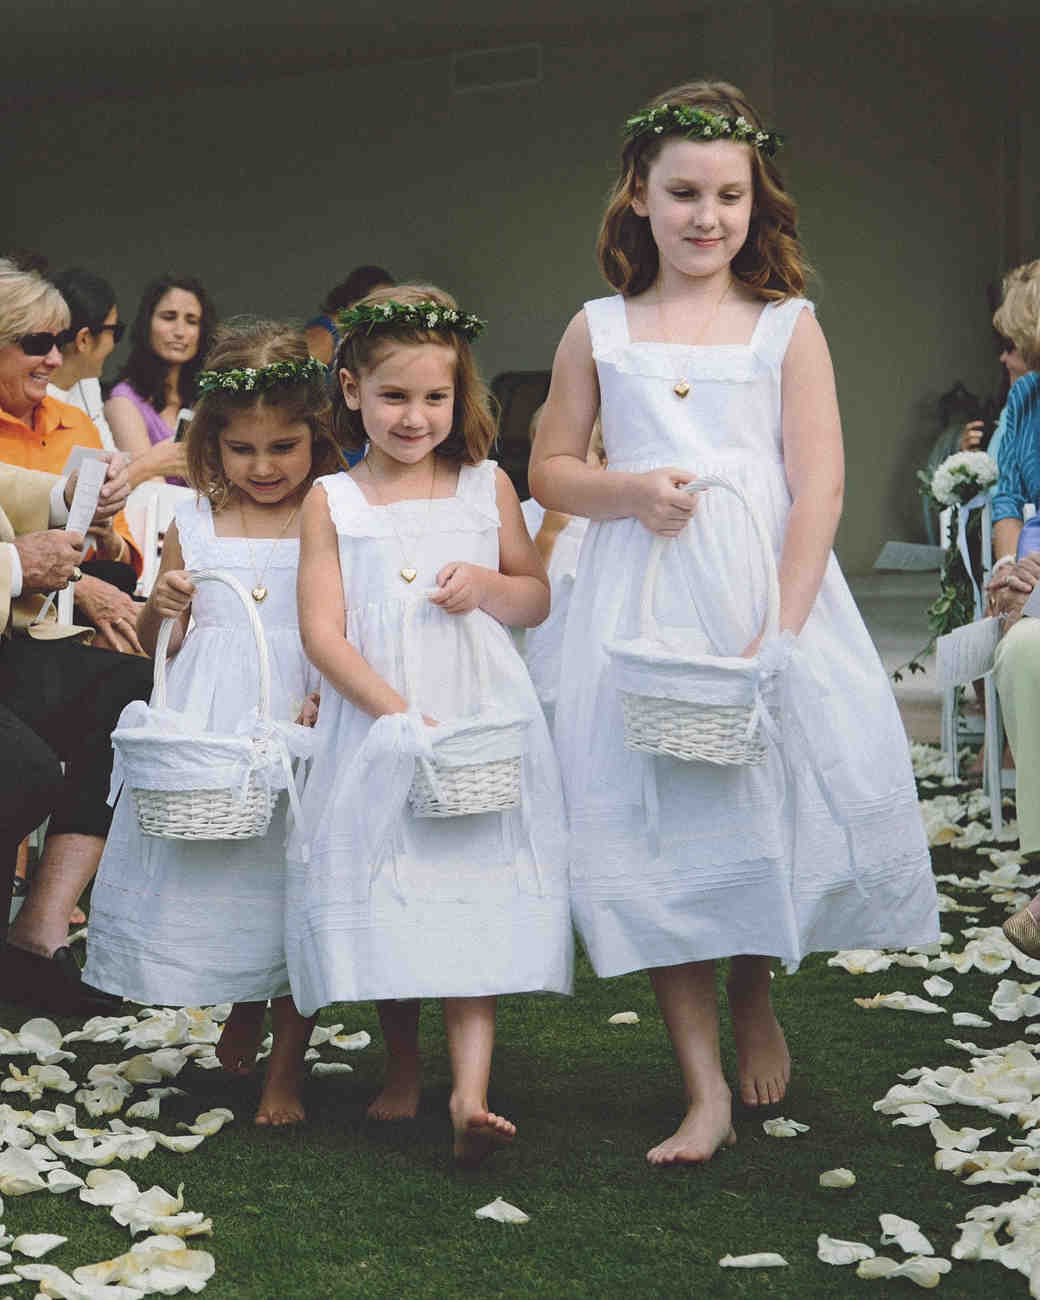 molly-greg-wedding-flowergirls-003-s111481-0814.jpg